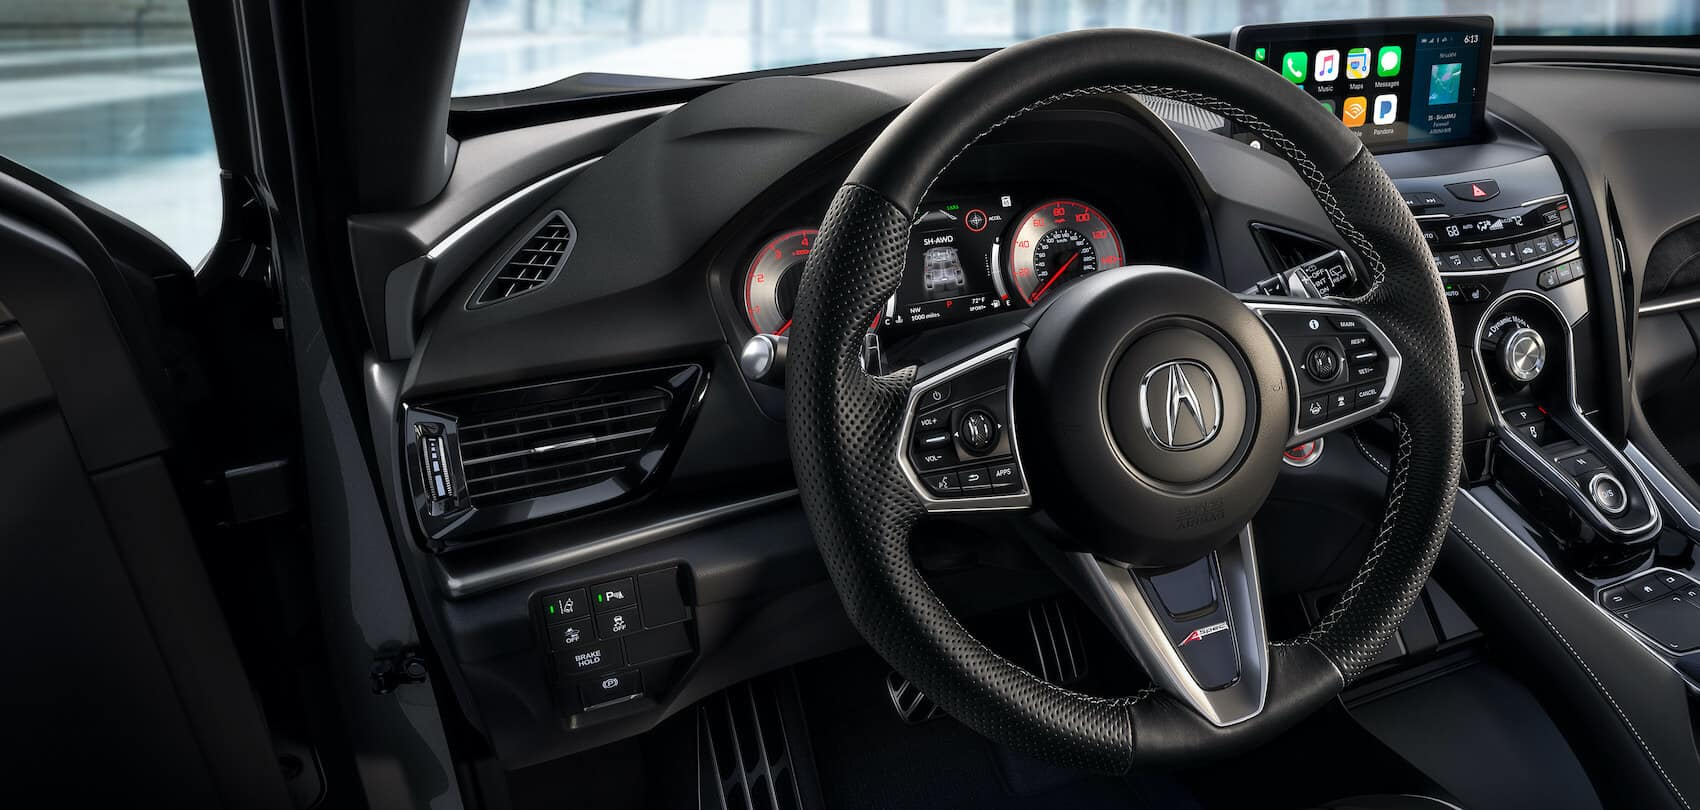 Additional Dashboard Lights in Your RDX